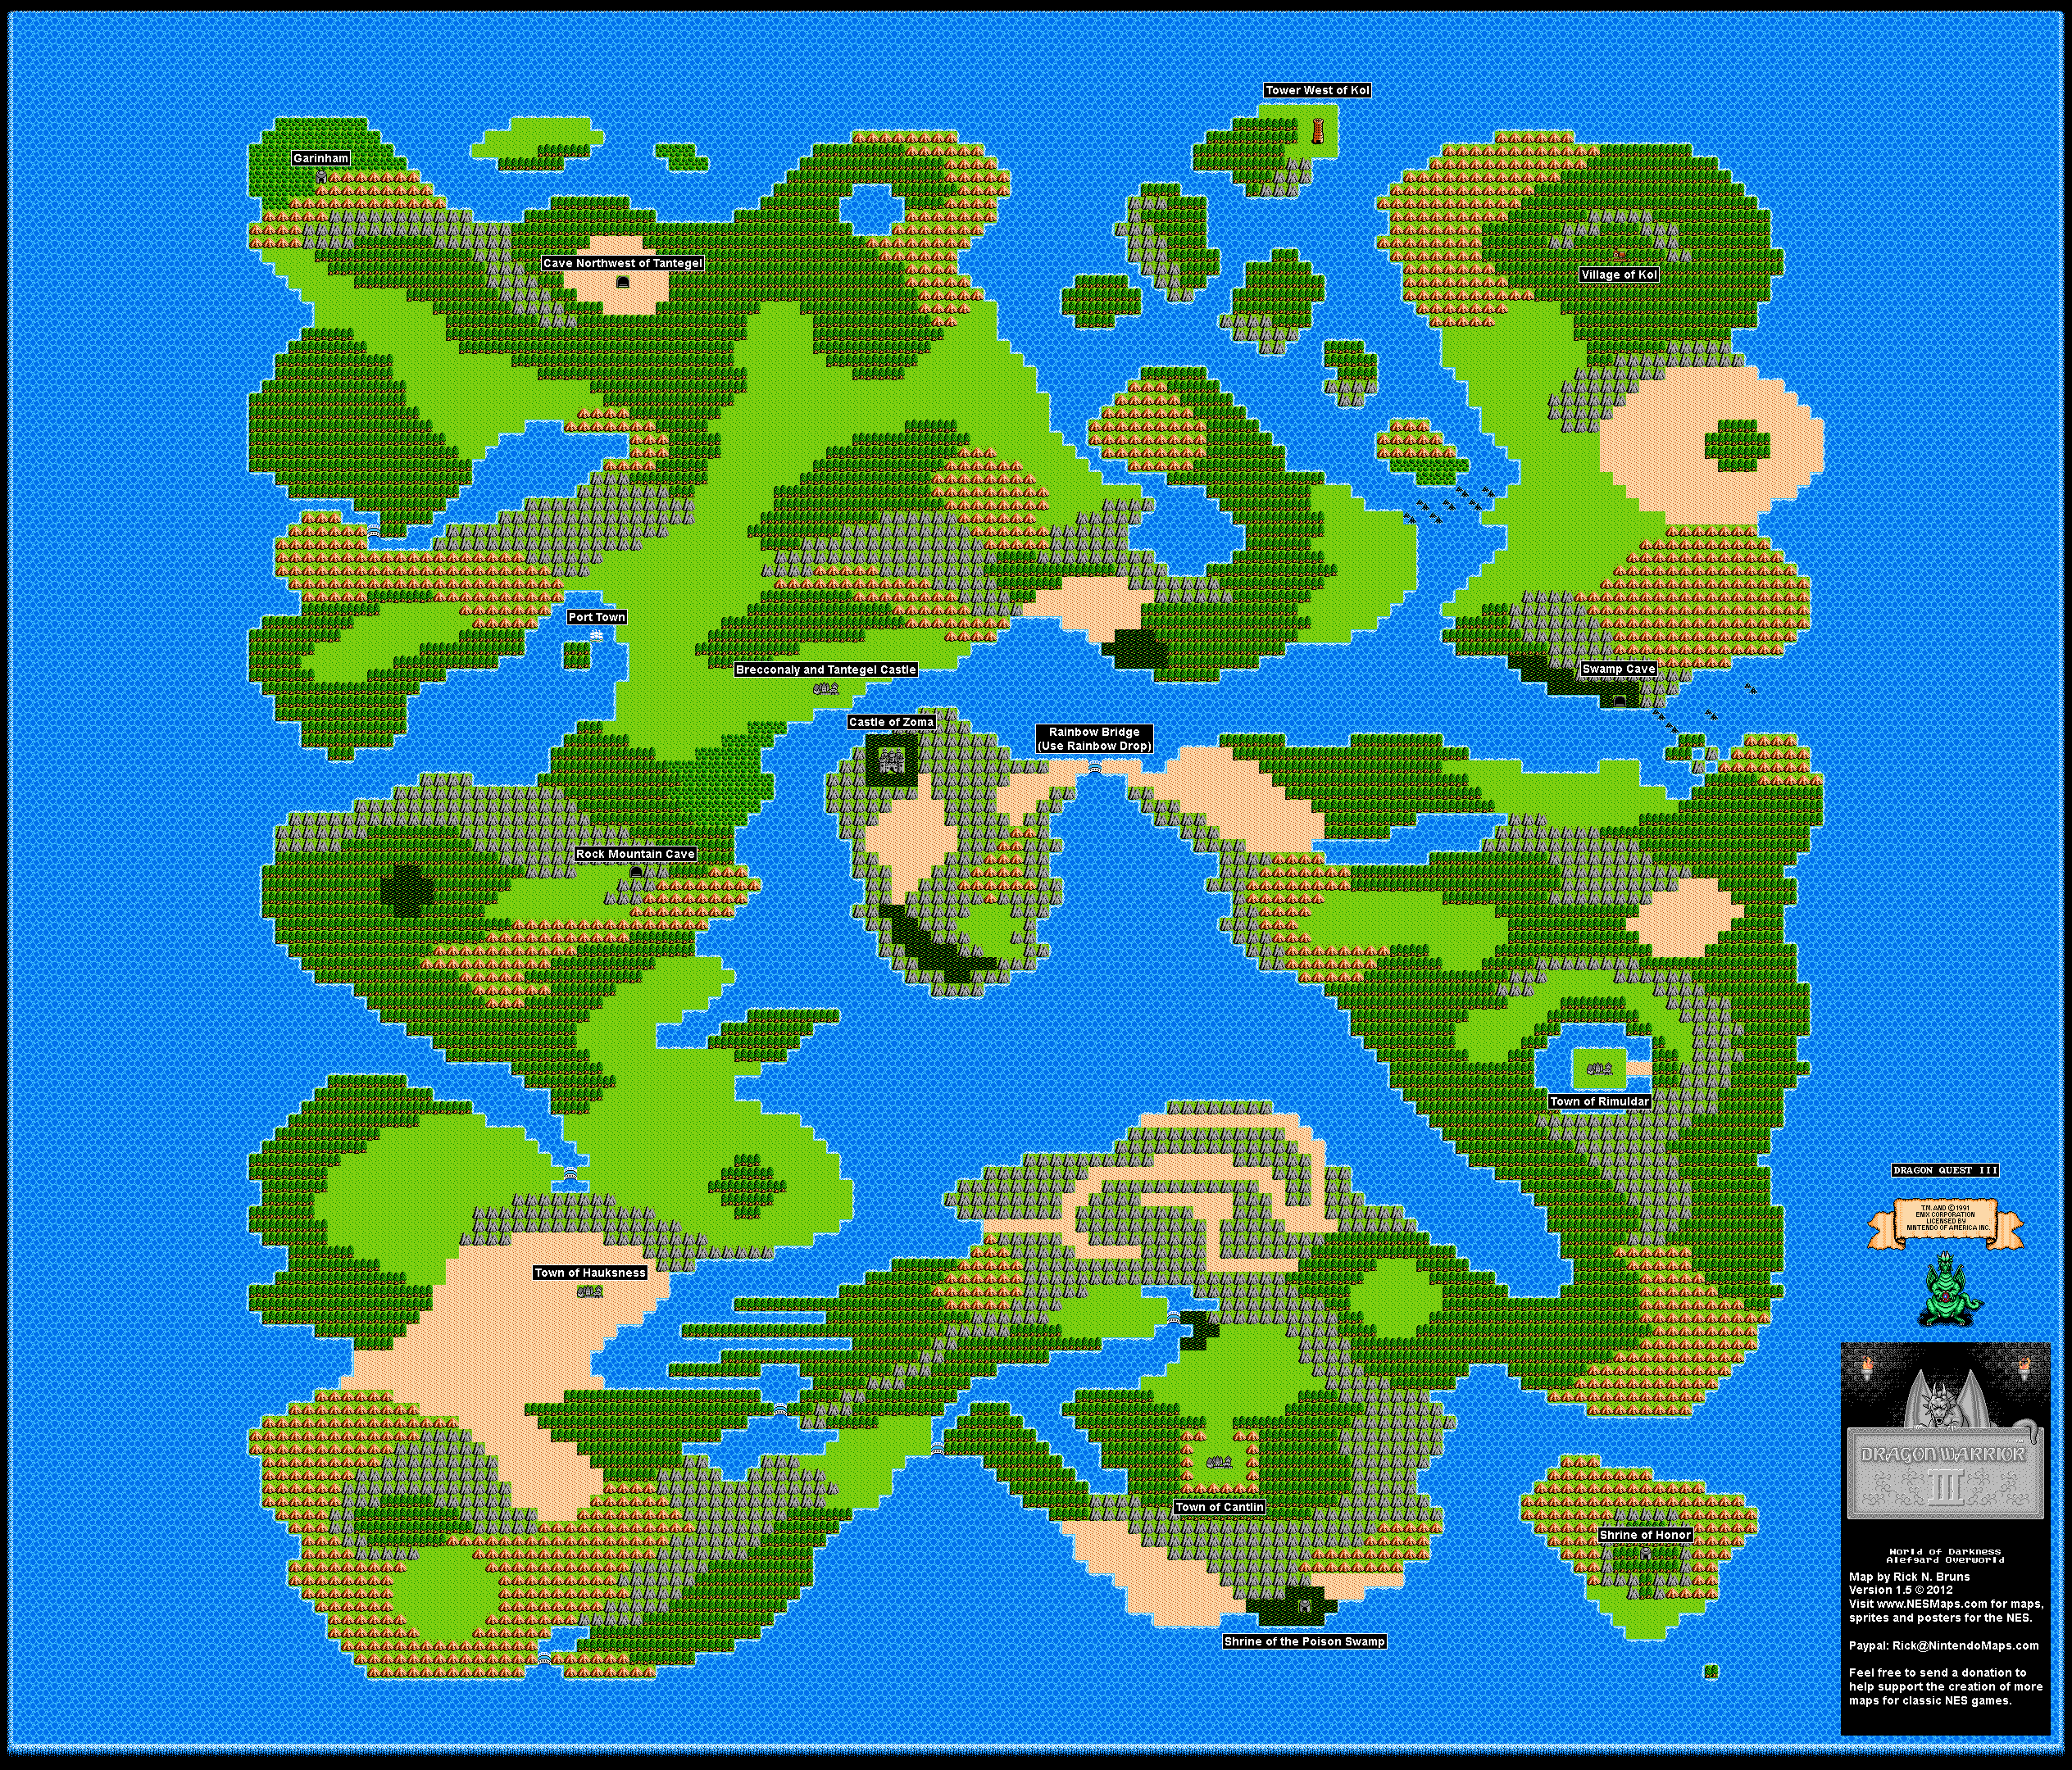 DragonWarrior3Overworld2LMap Dragon Warrior Map on just cause 2 map, the legend of zelda, double dragon, dragon quest monsters: joker 2, dragon quest viii: journey of the cursed king, dragon quest, crash bandicoot 2 map, dragon quest vi: realms of revelation, super mario brothers 2 map, ducktales 2 map, breath of fire 2 map, dragon quest v: hand of the heavenly bride, dark souls 2 map, jurassic park 2 map, dragon mountain map, crusader kings 2 map, dragon warrior iii, asia after world war 2 map, dragon quest world map, call of duty 2 map, dragon quest 4 map, indiana jones 2 map, forza horizon 2 map, chrono cross, adventure island 2 map, dragon tree map, dragon quest ix: sentinels of the starry skies, castlevania 2 map, wario land 2 map, infinity blade 2 map, dragon warrior monsters,